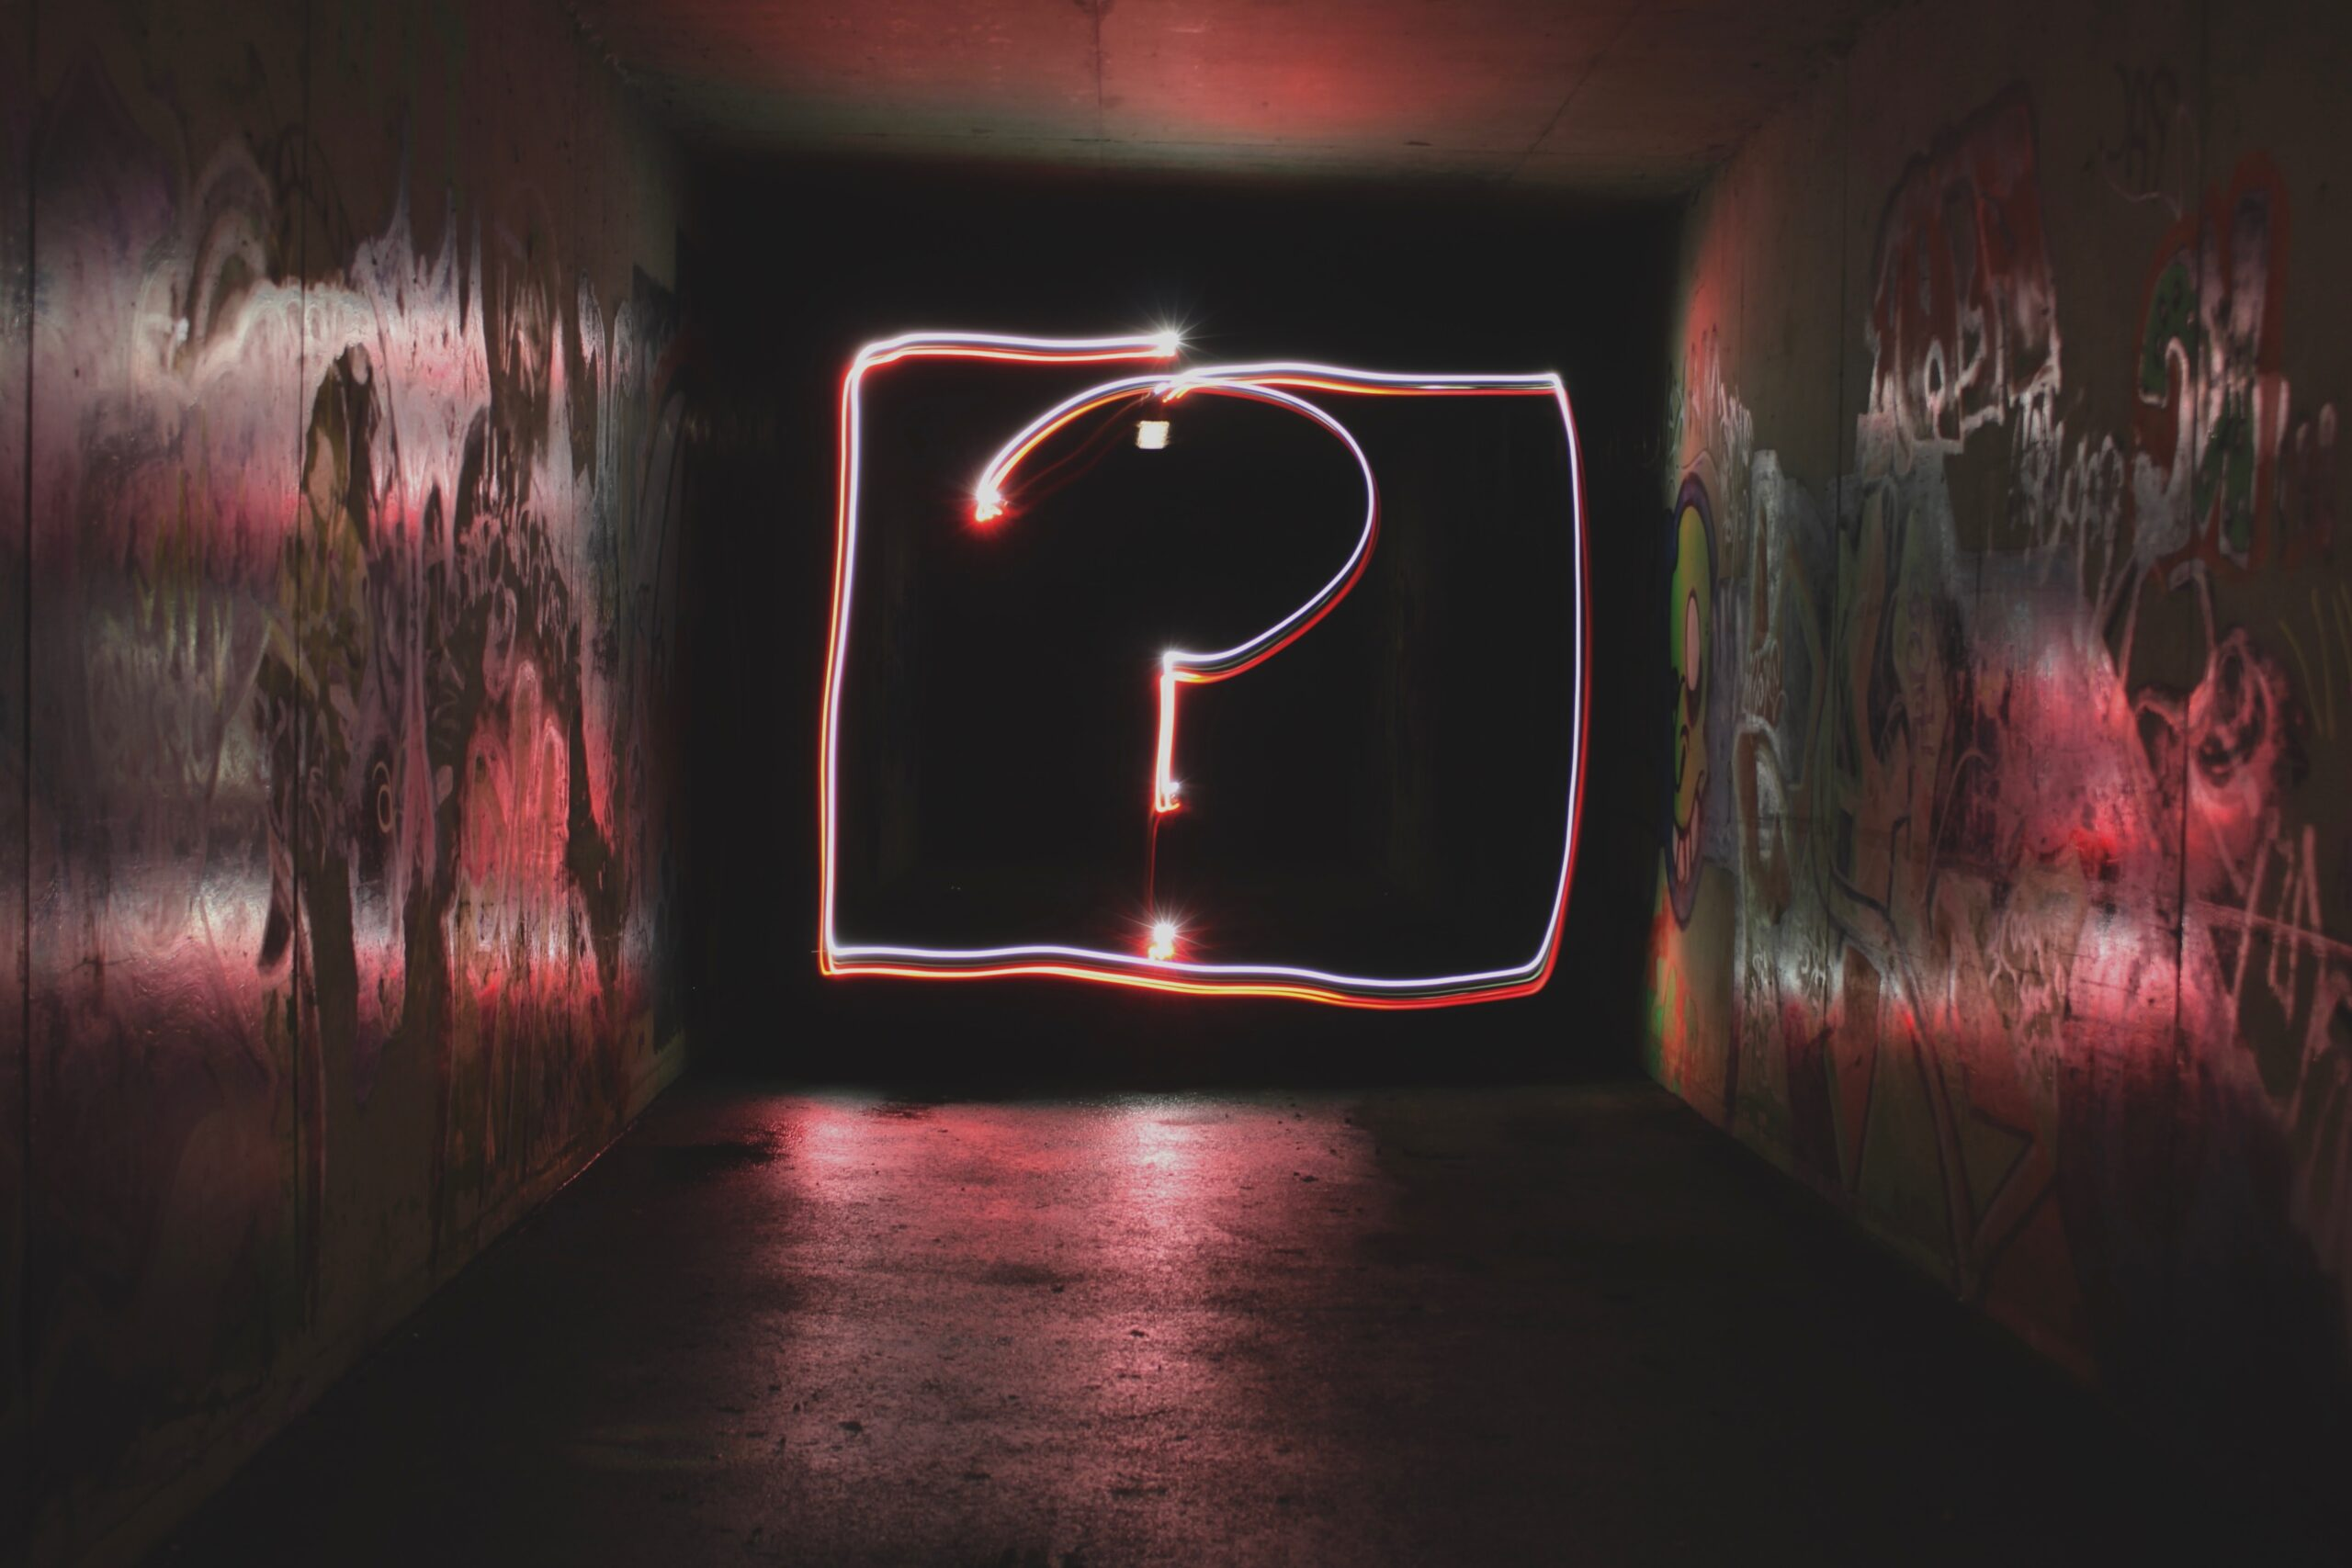 A question mark on the wall in neon in a dark room